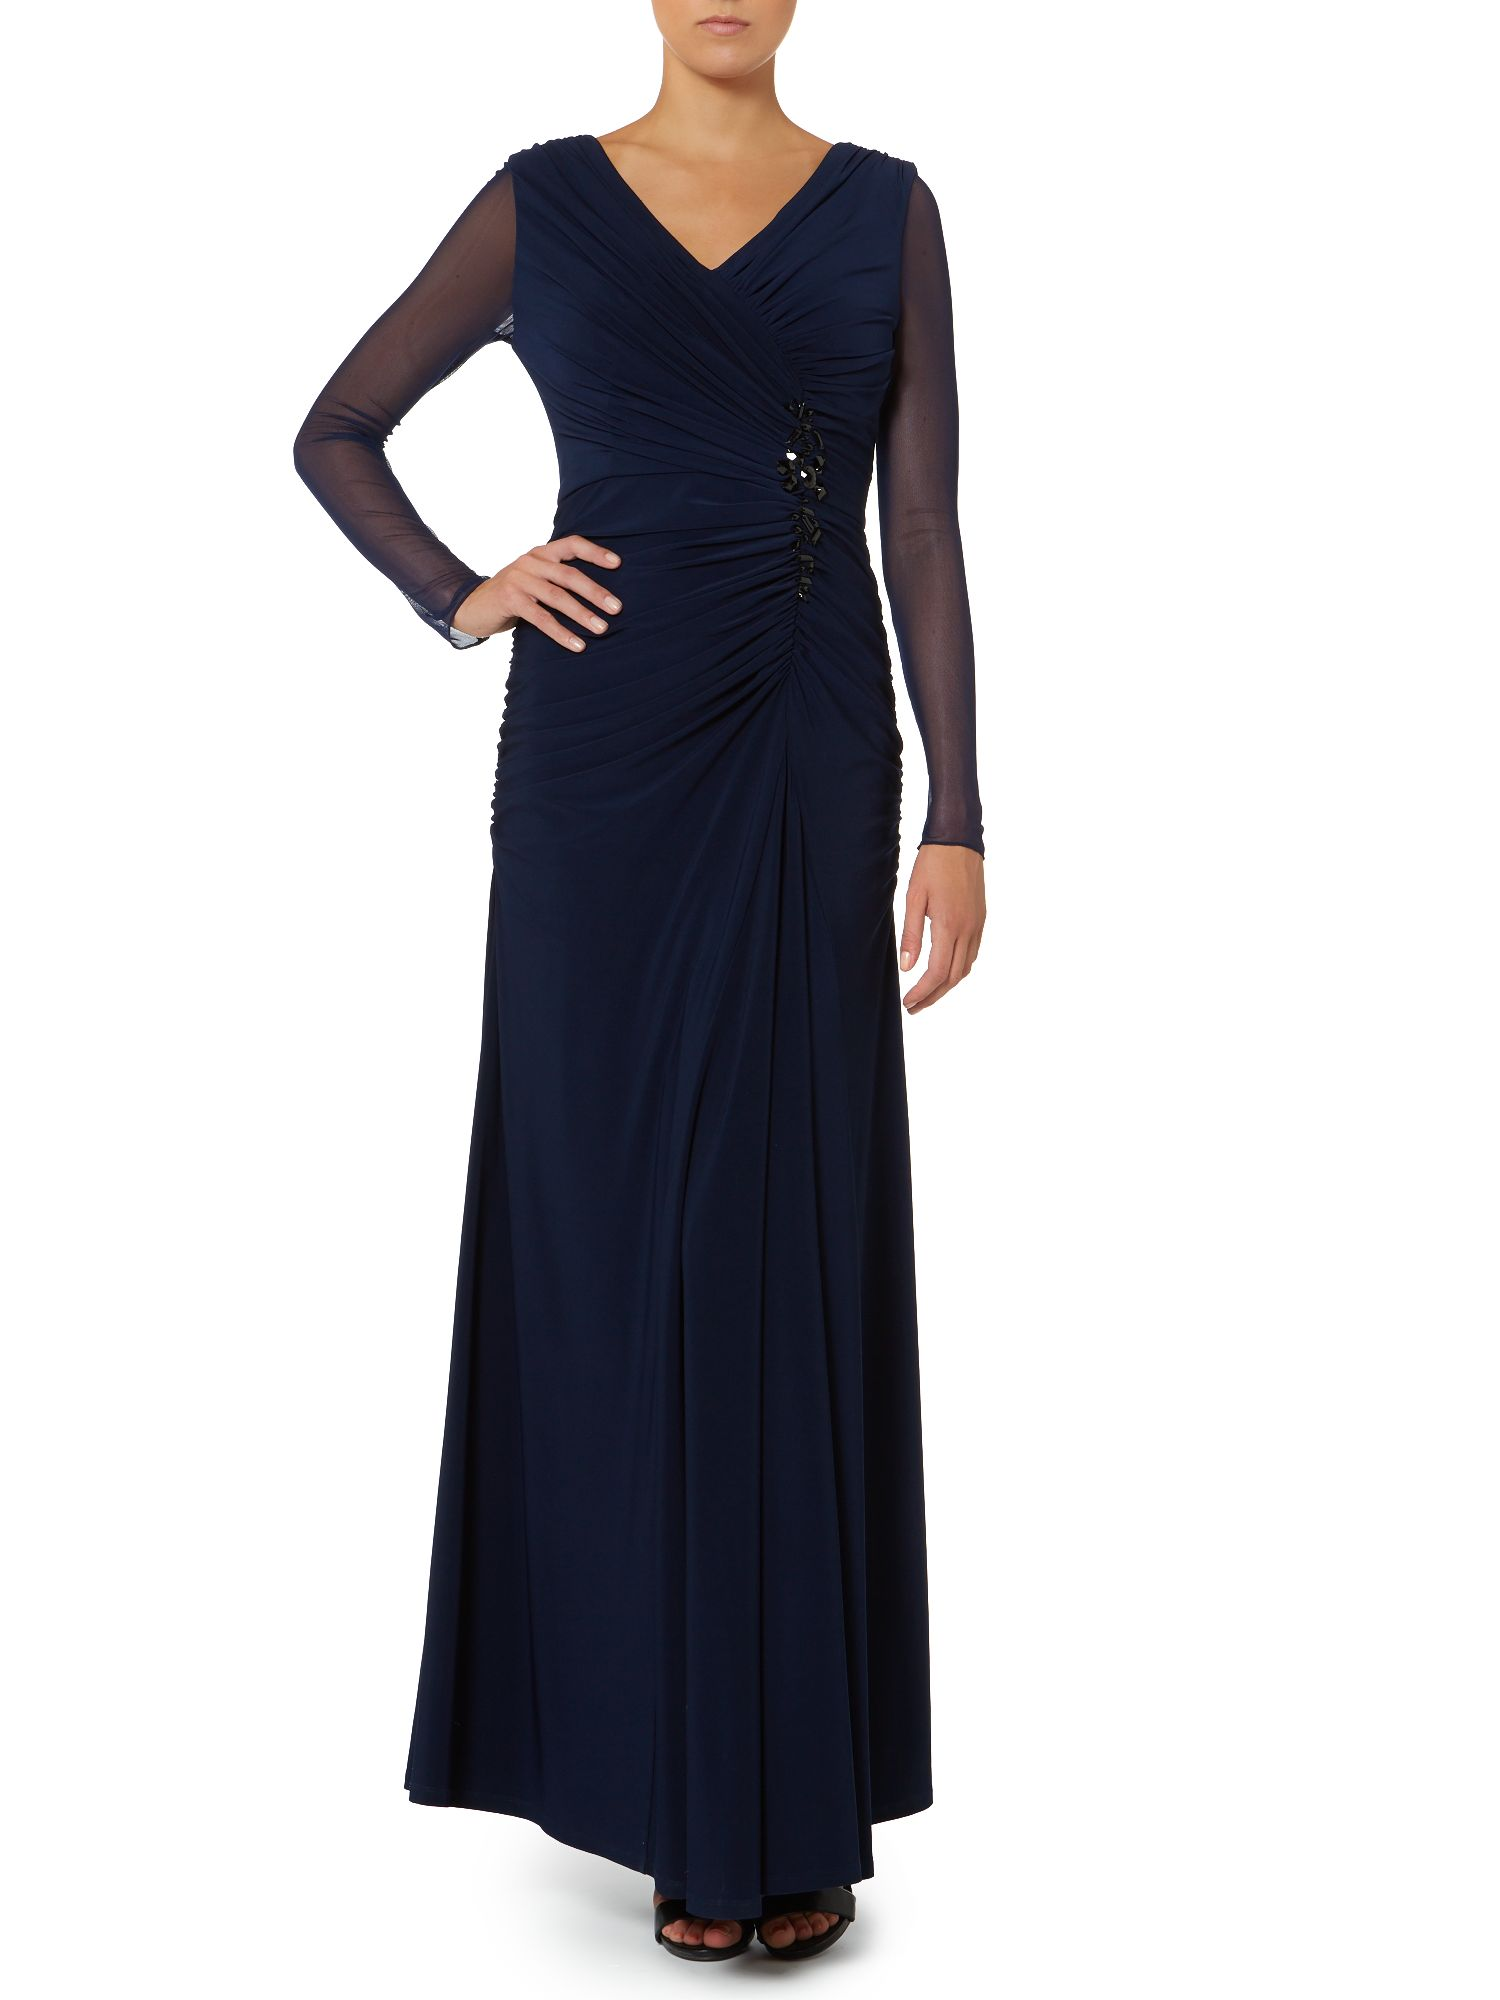 Sheer sleeve dress with rouched bodice